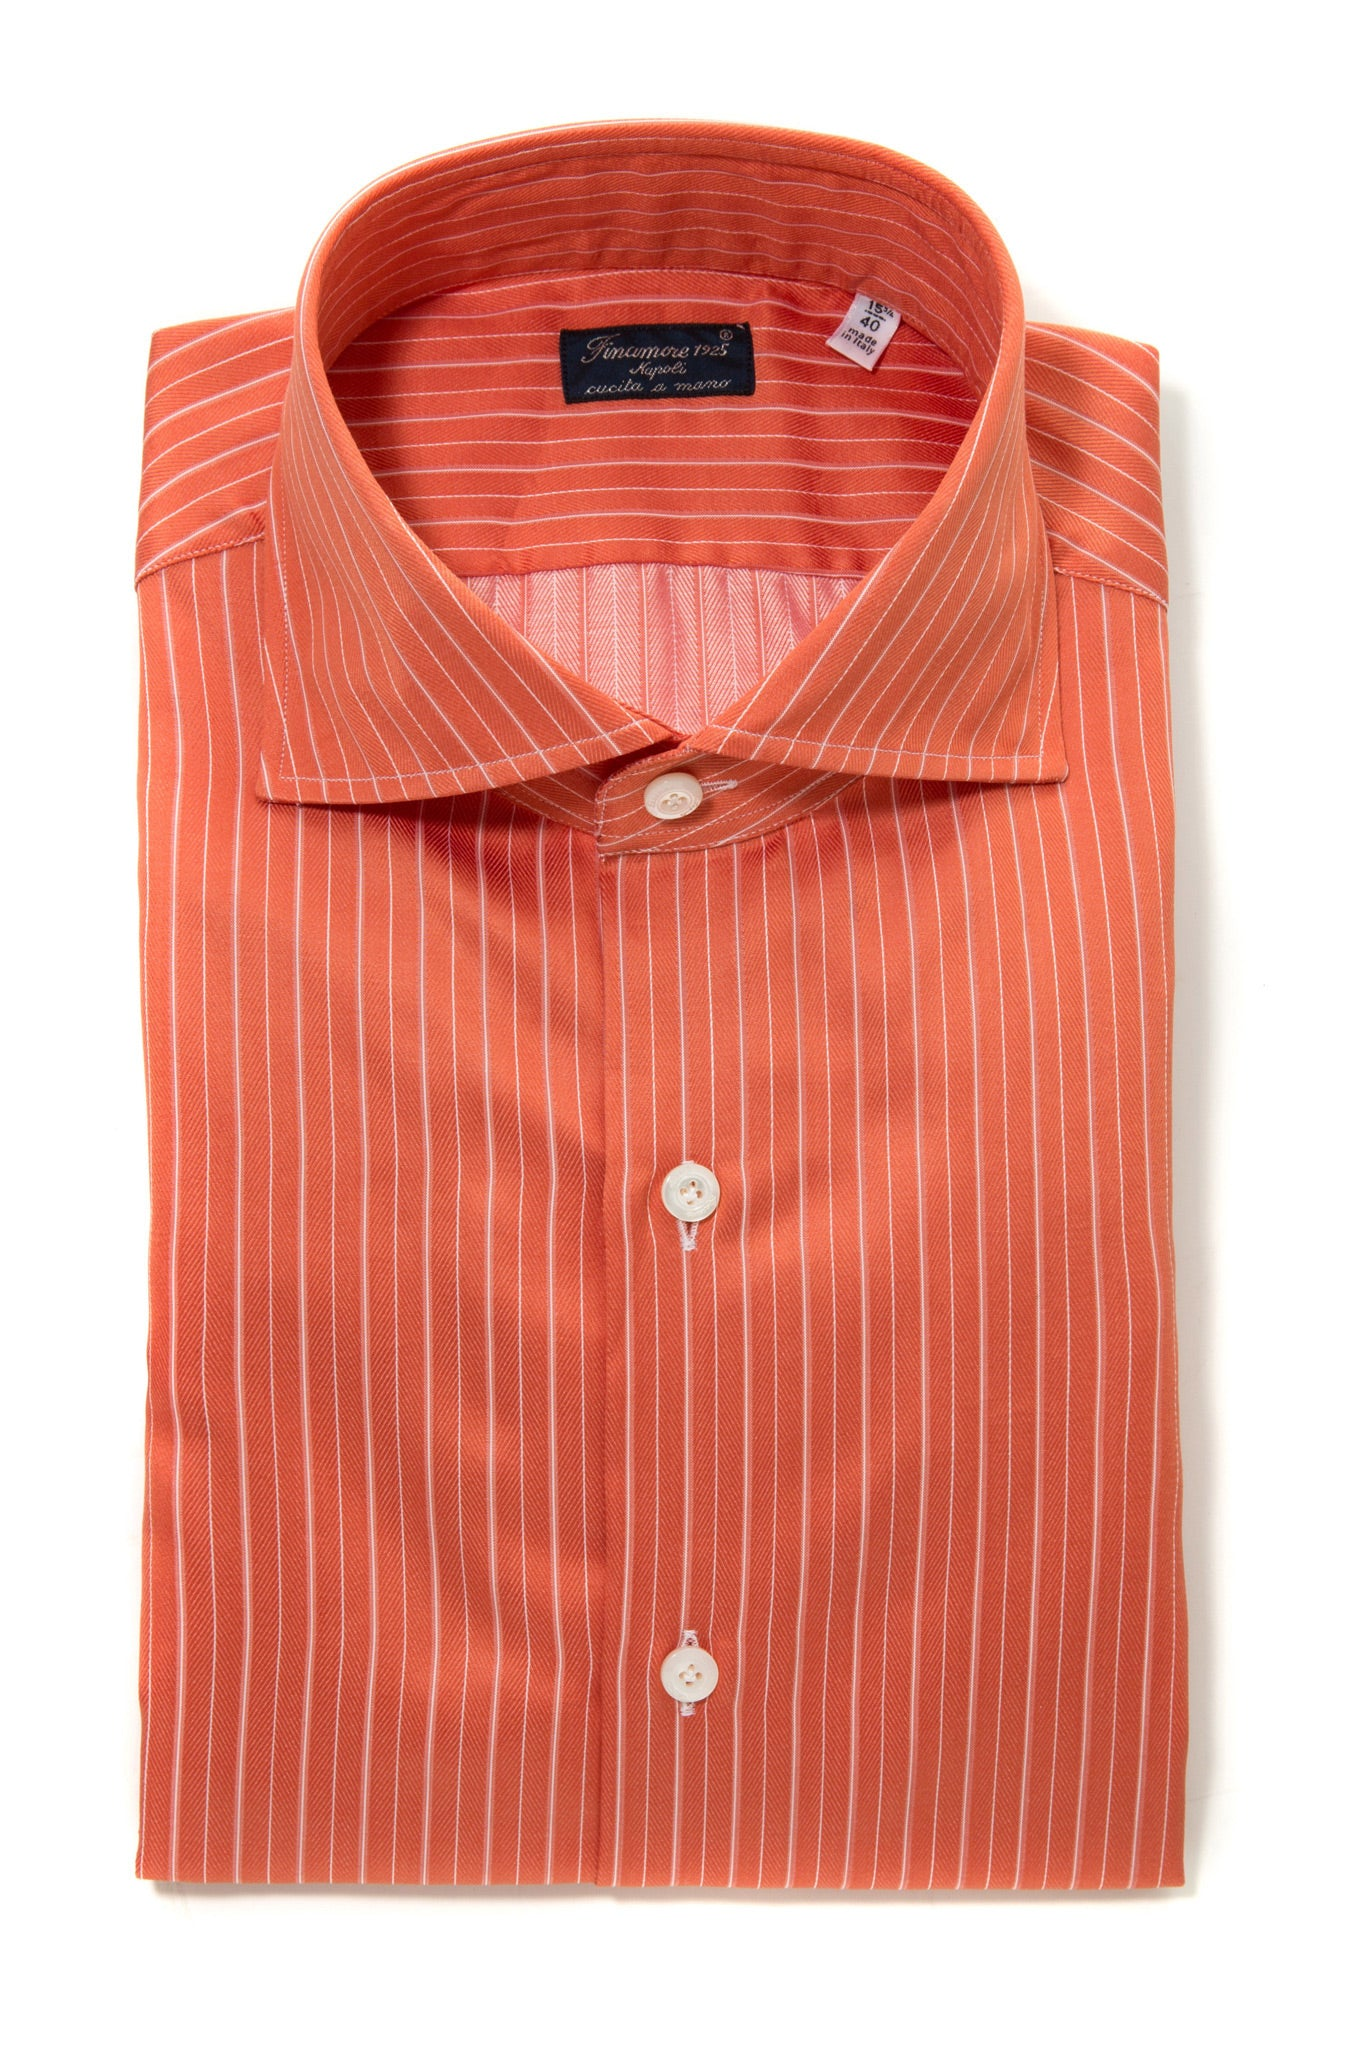 Finamore Lodovico Herringbone Dress Shirt (323236266008)